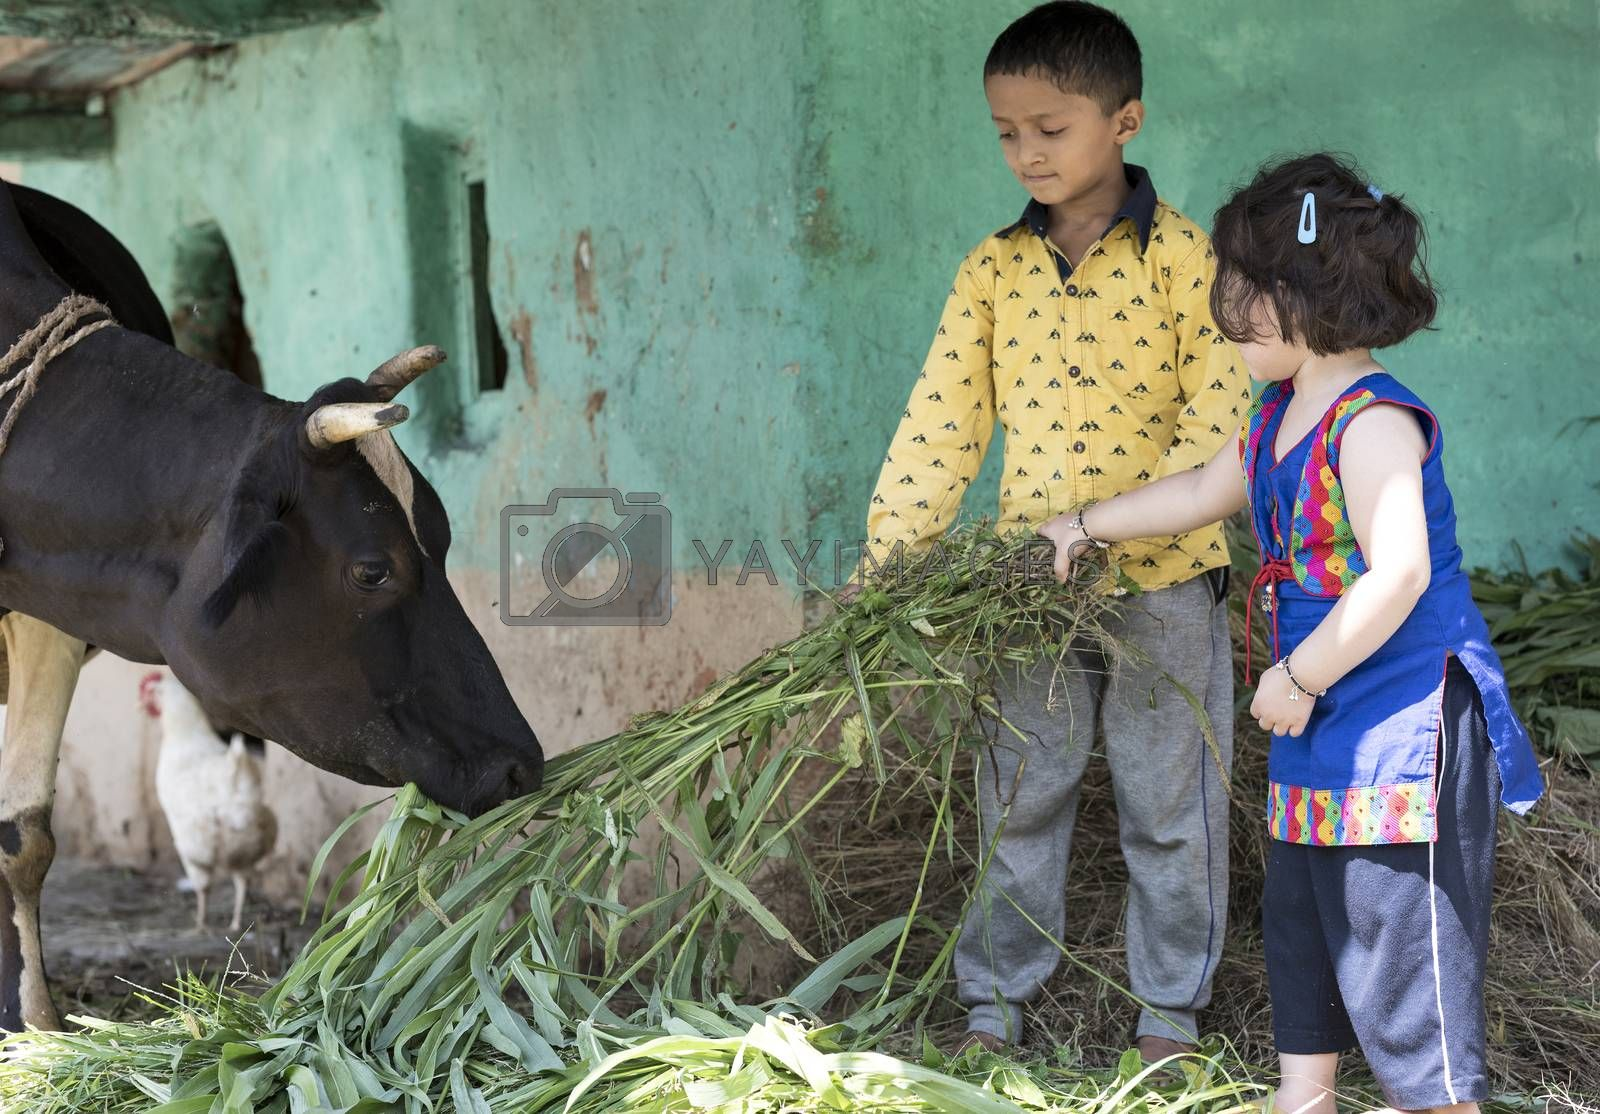 Cute little girl and her brother feeding a cow with grass outdoors in India.